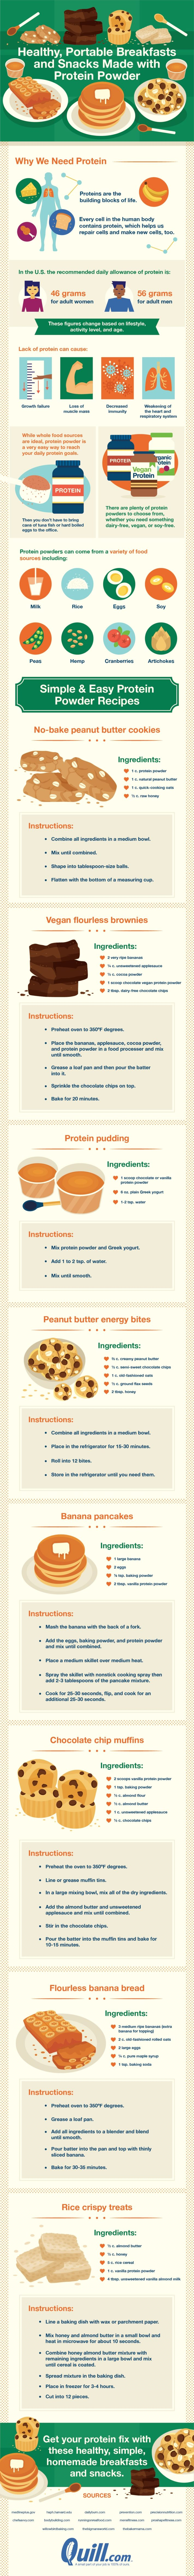 Healthy portable breakfasts and snacks made with protein powder